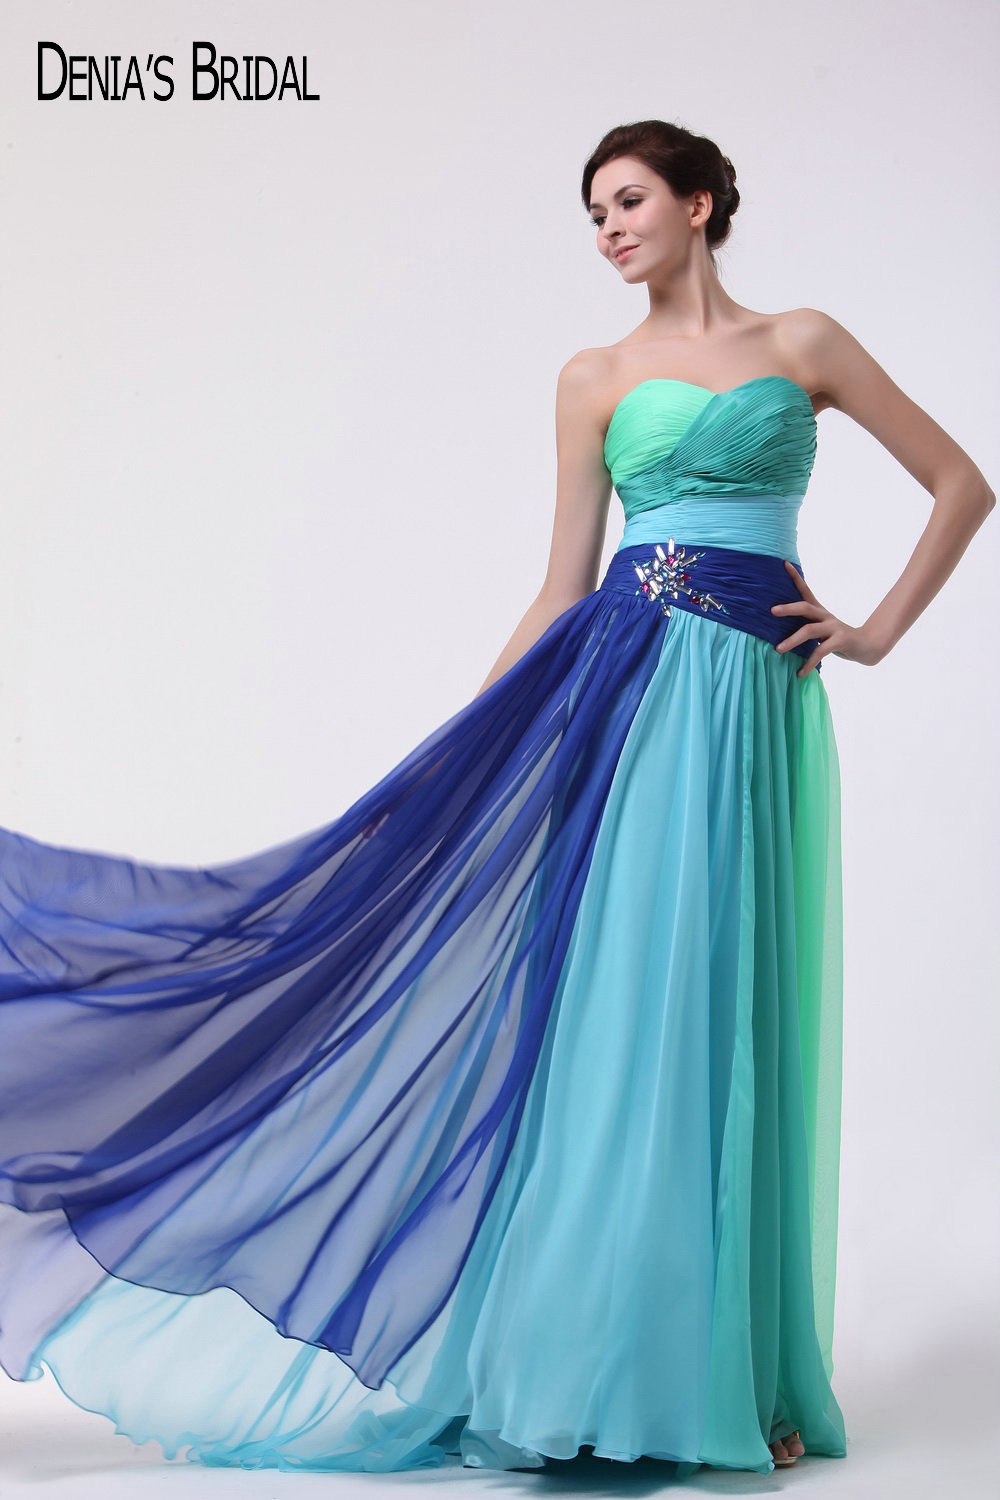 2017 Colorful A-line Evening Dresses with Halter Neckline Beaded Floor Length Sweep Train Party Prom Gowns